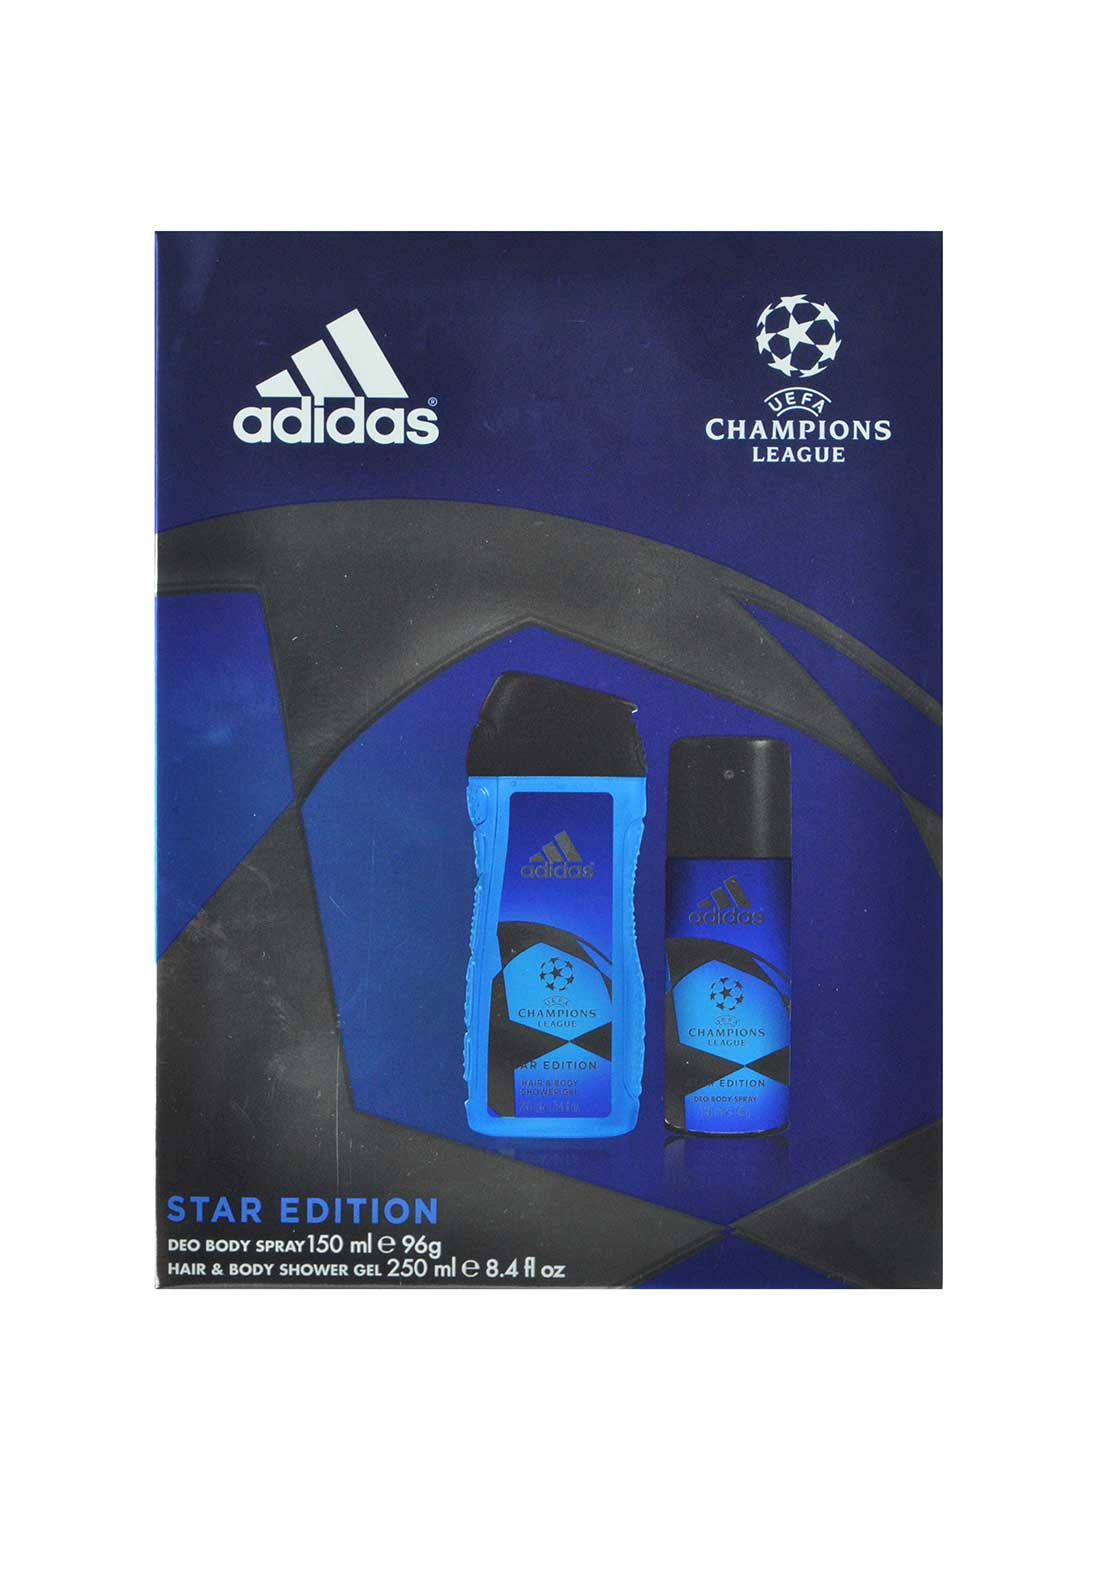 Adidas Champions League Star Edition Deodorant Gift Set